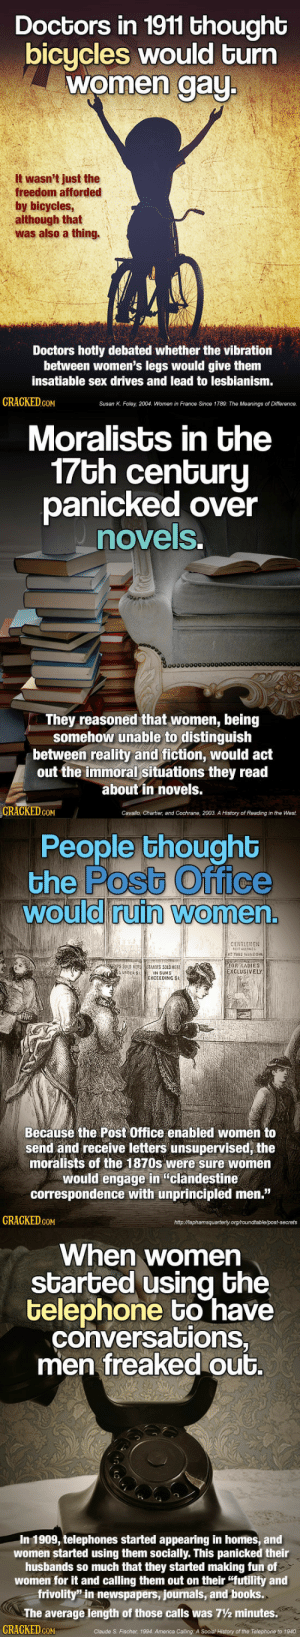 """jenroses: kipplekipple:  virginiaisforhaters: Wow it's almost like most of human history has been about controlling women… or something…  I love the bike one. """"The women may experience sexual pleasure, whereupon they will discard men entirely and immediately.""""  this casts an entirely new light on""""A woman needs a man like a fish needs a bicycle"""" and I'm sideyeing my brain for thinking it. : Doctors in 1911 thought  bicycles would turn  women aU  It wasn't just the  freedom afforded  by bicycles  although that  was also a thing.  Doctors hotly debated whether the vibration  between women's legs would give them  insatiable sex drives and lead to lesbianism  GRAGKED GoM  Susan K. Foley, 2004, Women in France Since 1789: The Meanings of Difference.   Moralists in the  7Gh cenGuru  panicked over  novels  0o000000000  They reasoned that women, being  somehow unable to distinguish  between reality and fiction, would act  out the immoral situations they read  about in novels.  GRAGKED.GOM  Cavallo, Chartier, and Cochrane, 2003. A History of Reading in the West.   People thoughb  the Postb Office  would ruin Women  0  0  CENTLEMENl  FOR LADIES  XCLUSİVELY  SUNDER S  IN SUMS  EXCEEDING SI  Becausé the Post Office enabled women to  send and receive letters unsupervised, the  moralists of the 1870s were sure women  would engage in """"clandestine  correspondence with unprincipled men.""""  GRAGKED coM  httpMaphamsquarterly org/roundtable/post-secrets   When women  started using bhe  telephone bo have  conversations,  men freaked out.  In 1909, telephones started appearing in homes, and  women started using them socially. This panicked their  husbands so much that they started making fun of  women for it and calling them out on their """"futility and  frivolity"""" in newspapers, journals, and books.  The average length of those calls was 7½ minutes.  CRACKED cON  Claude S. Fischer, 1994. America Calling: A Social History of the Telephone to 1940 jenroses: kipplekipple:  virginiaisforhaters:"""